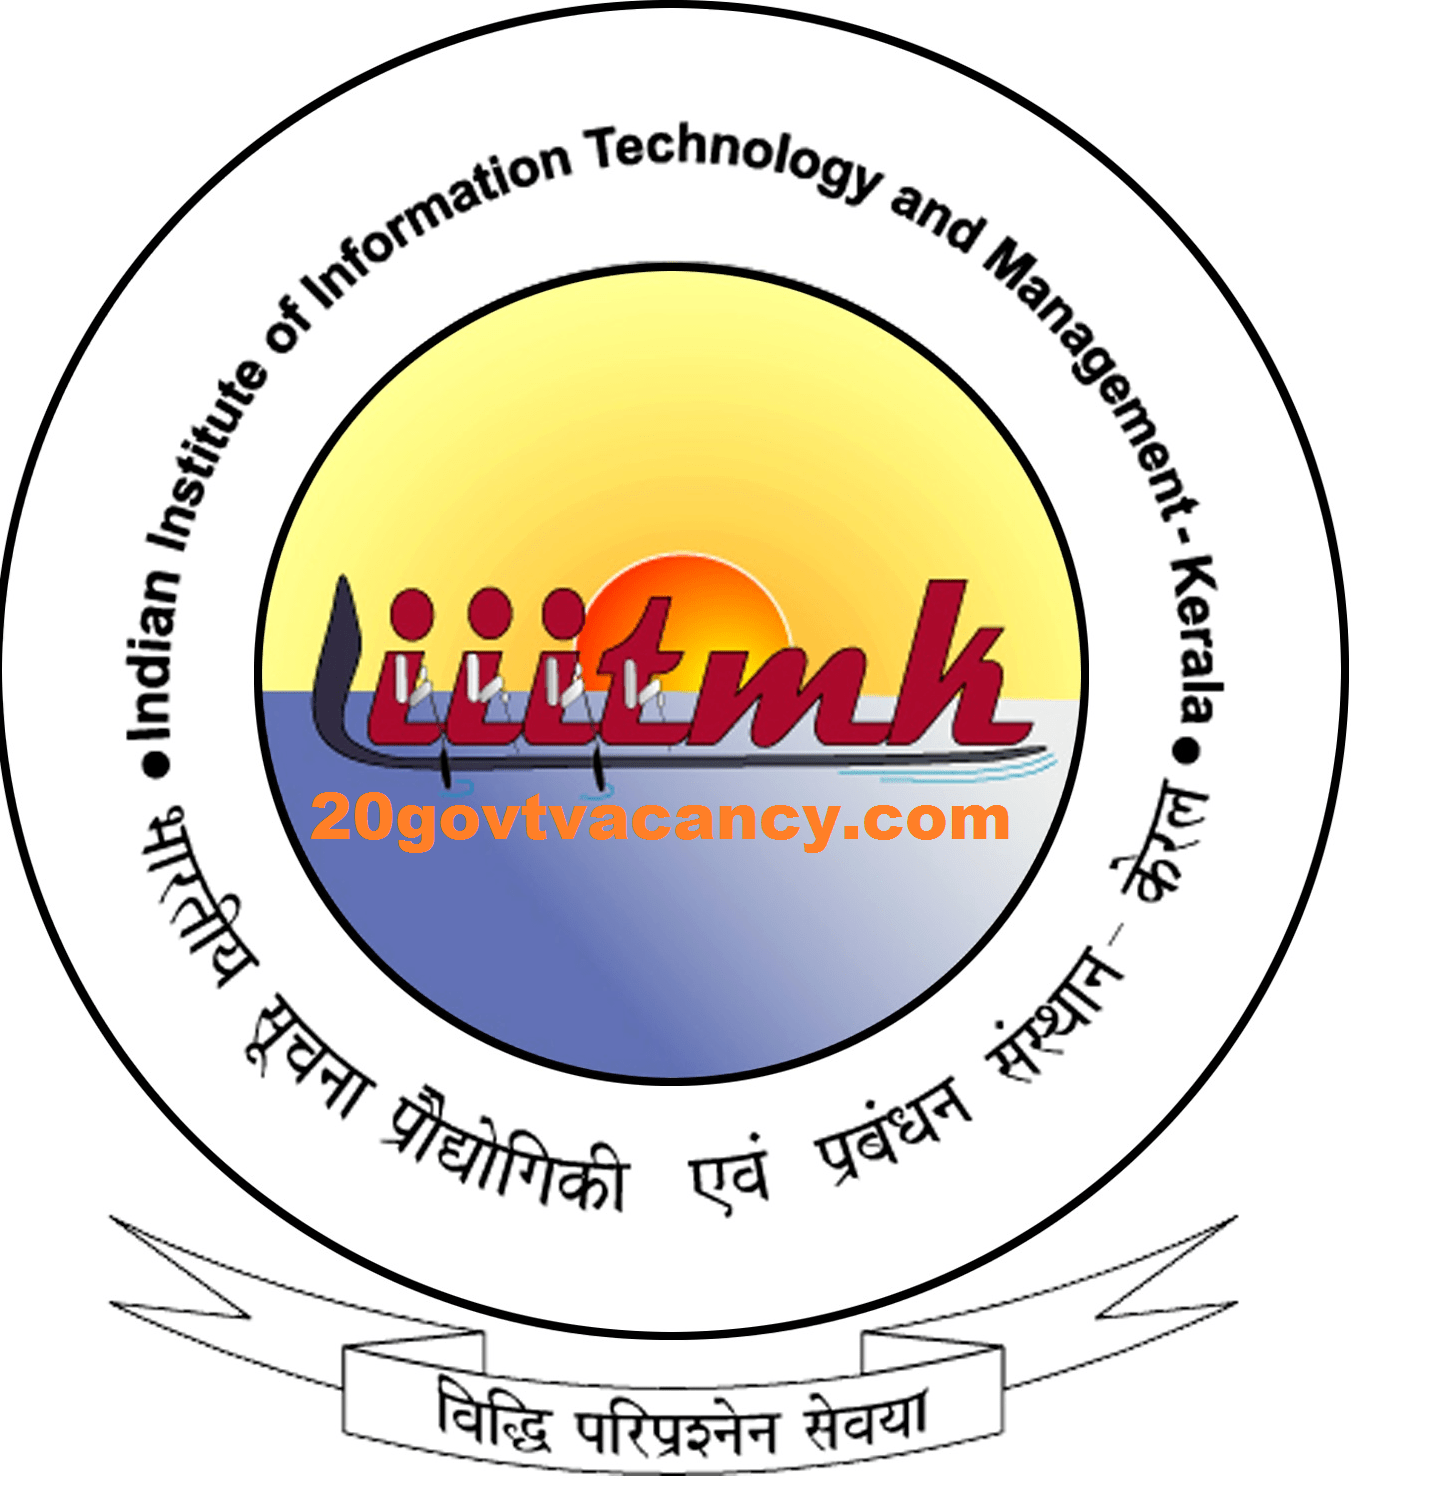 IIITM Kerala Recruitment 2020 Jobs In Indian Institute of Information Technology and Management